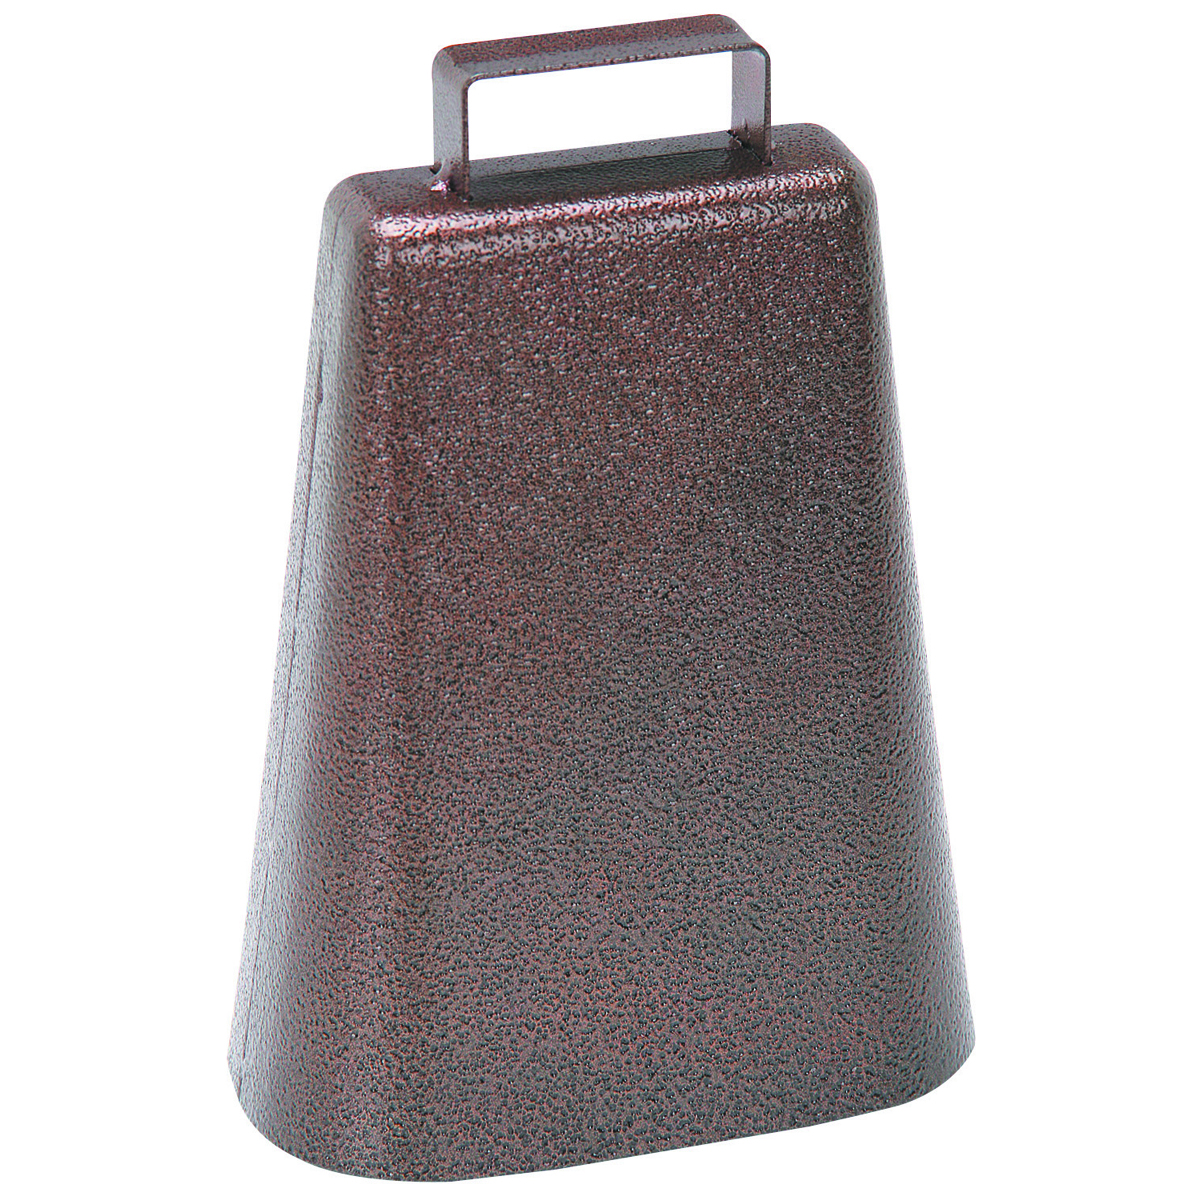 Motorcycle Tool Bag >> Got a fever? Steel Cowbell - The Prescription For More ...